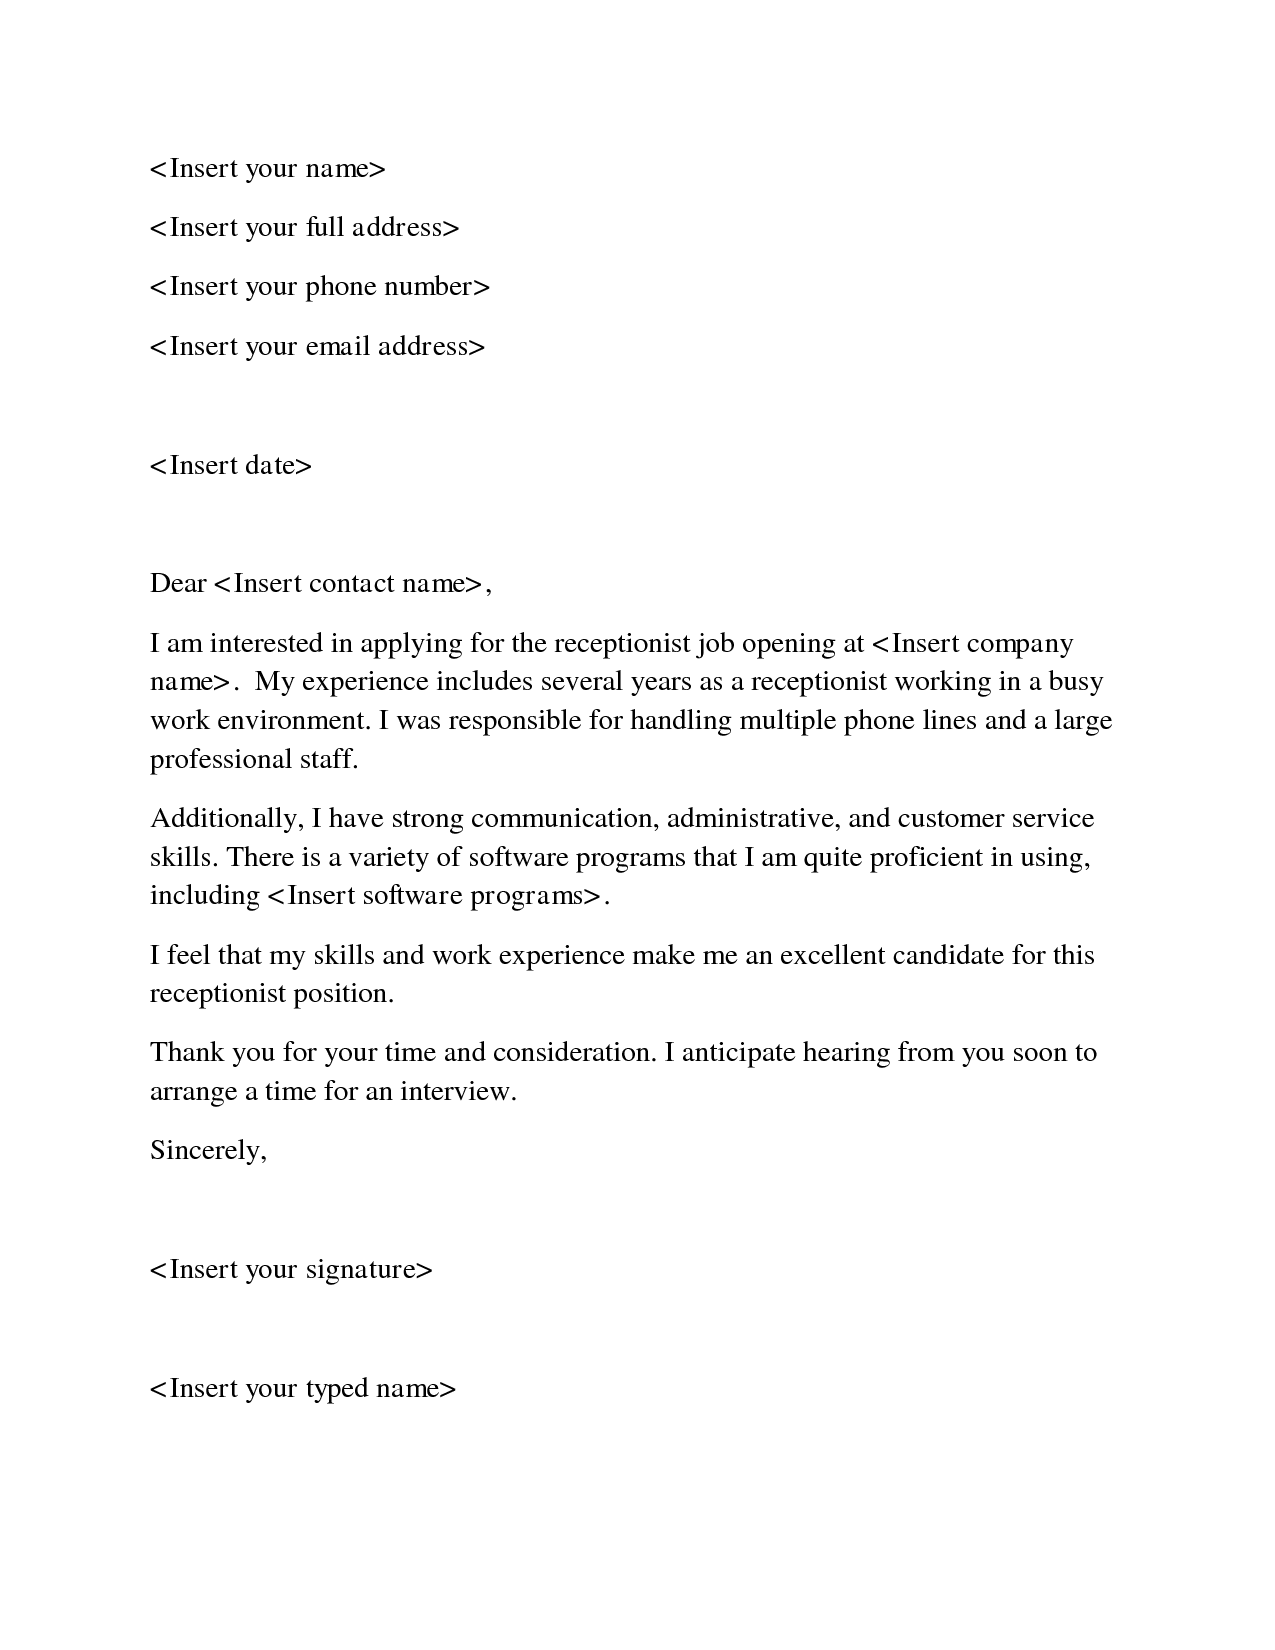 sample cover letter for receptionist job - Template